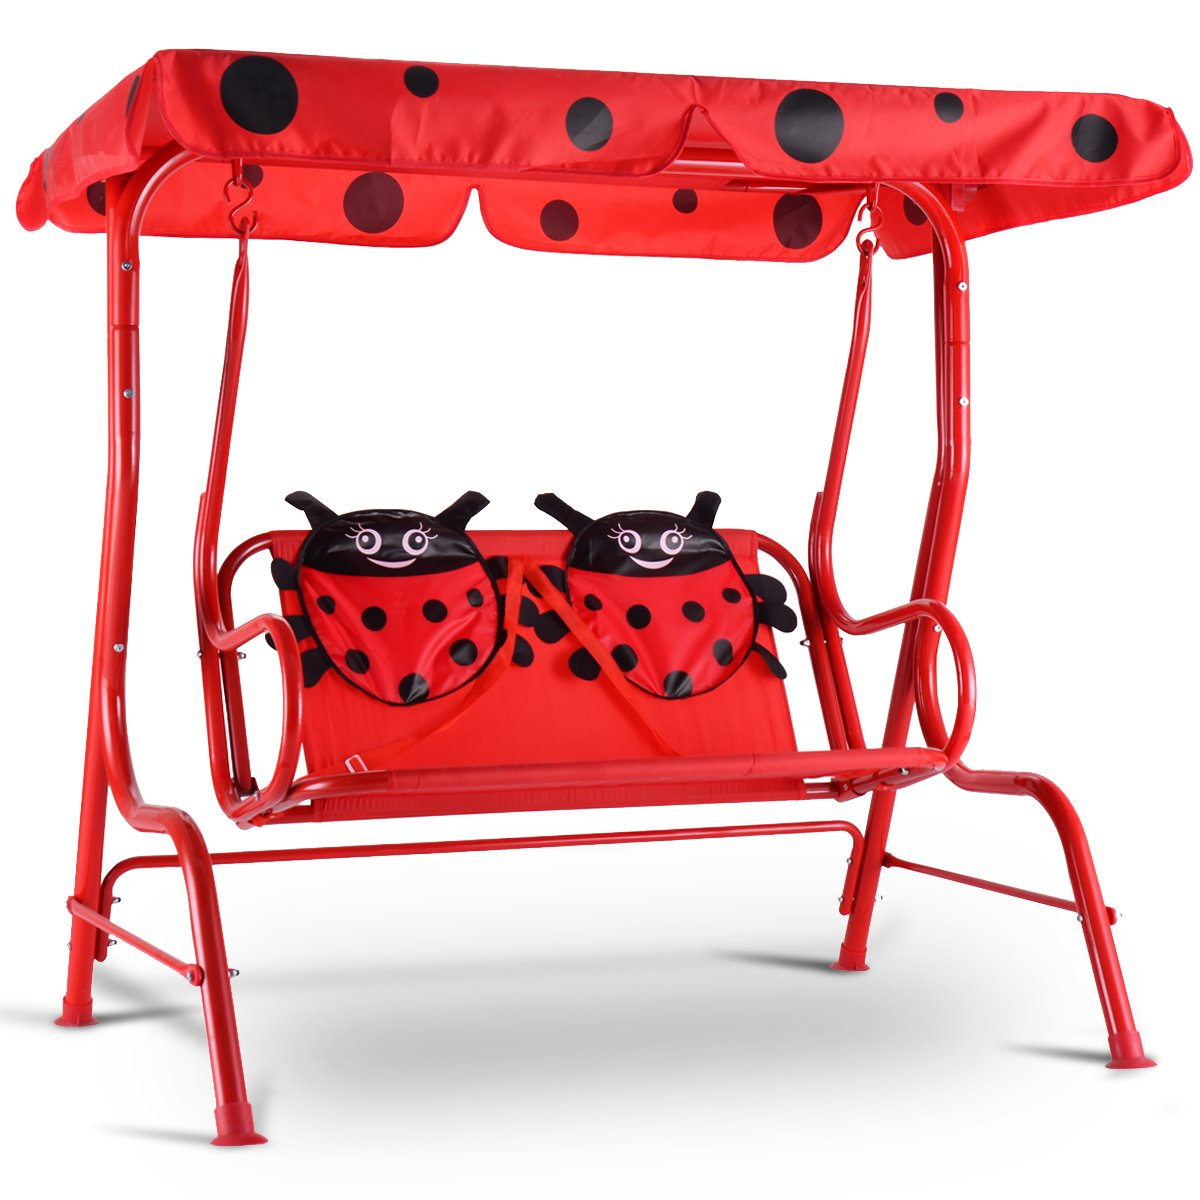 Costway Kids Swing Chair Metal Canopy Bench Rocking Seat Ladybug 2 Seats Hammock Red Patio Yard Garden Outdoor